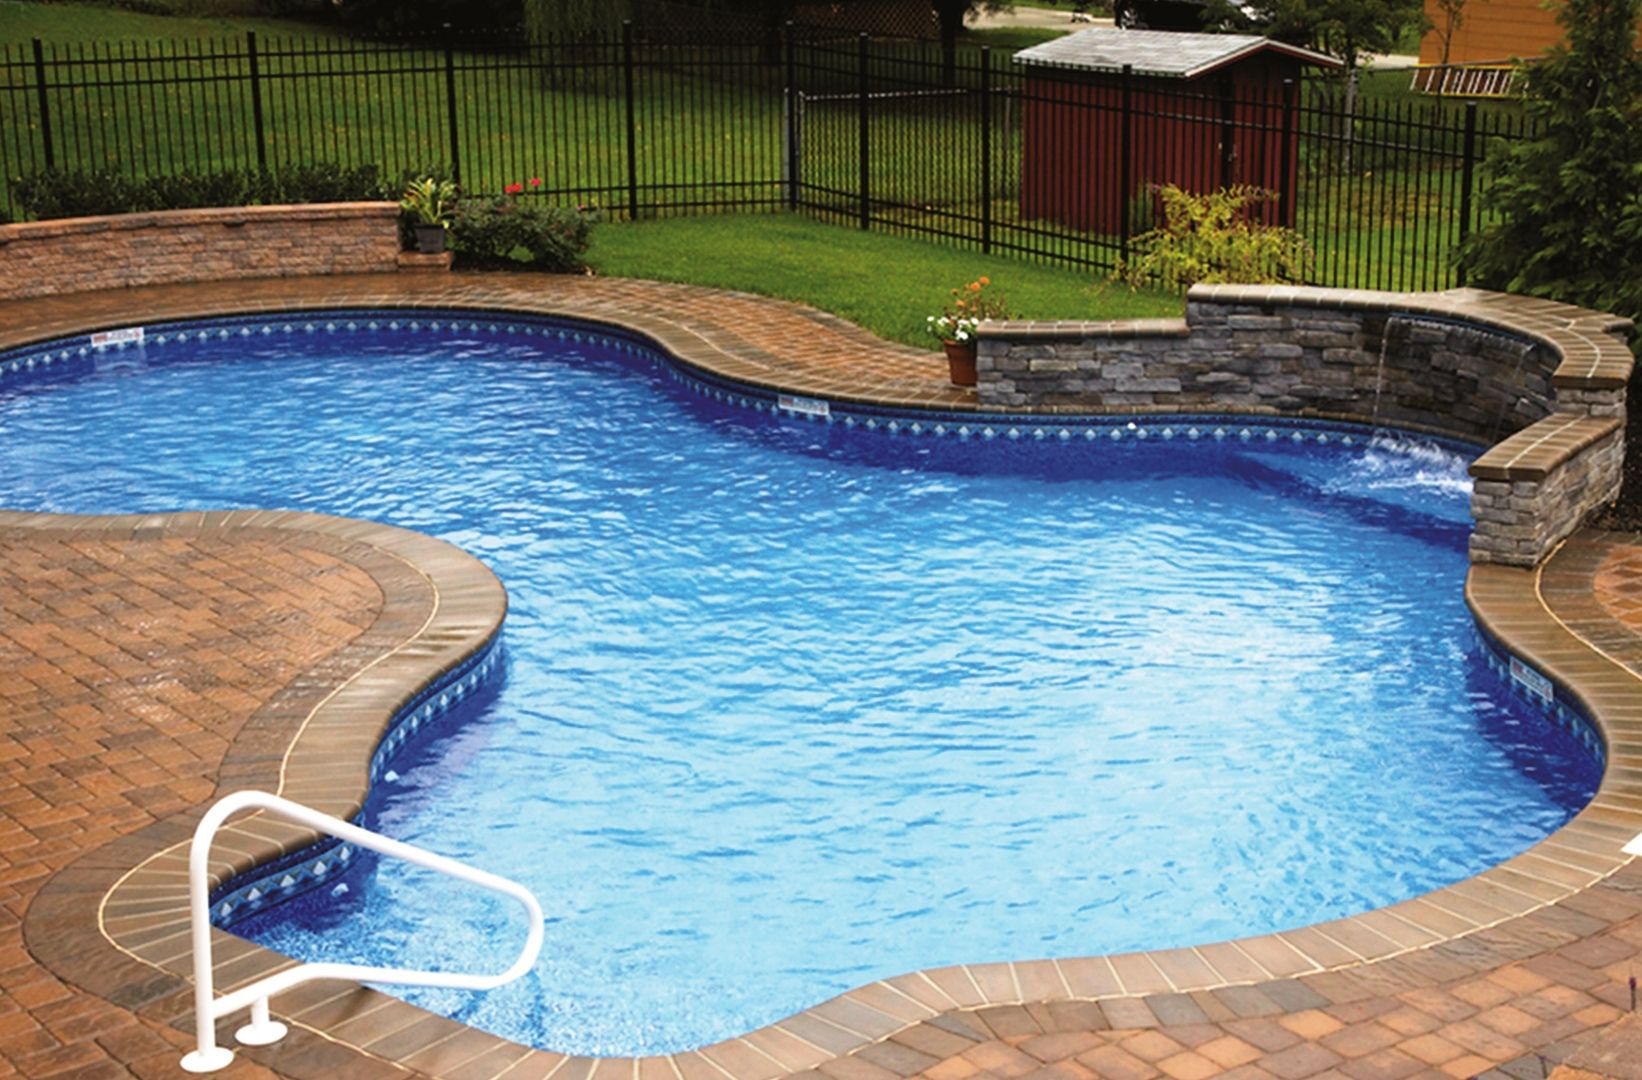 Back yard swimming pool ideas swimming pool design for Pool and backyard design